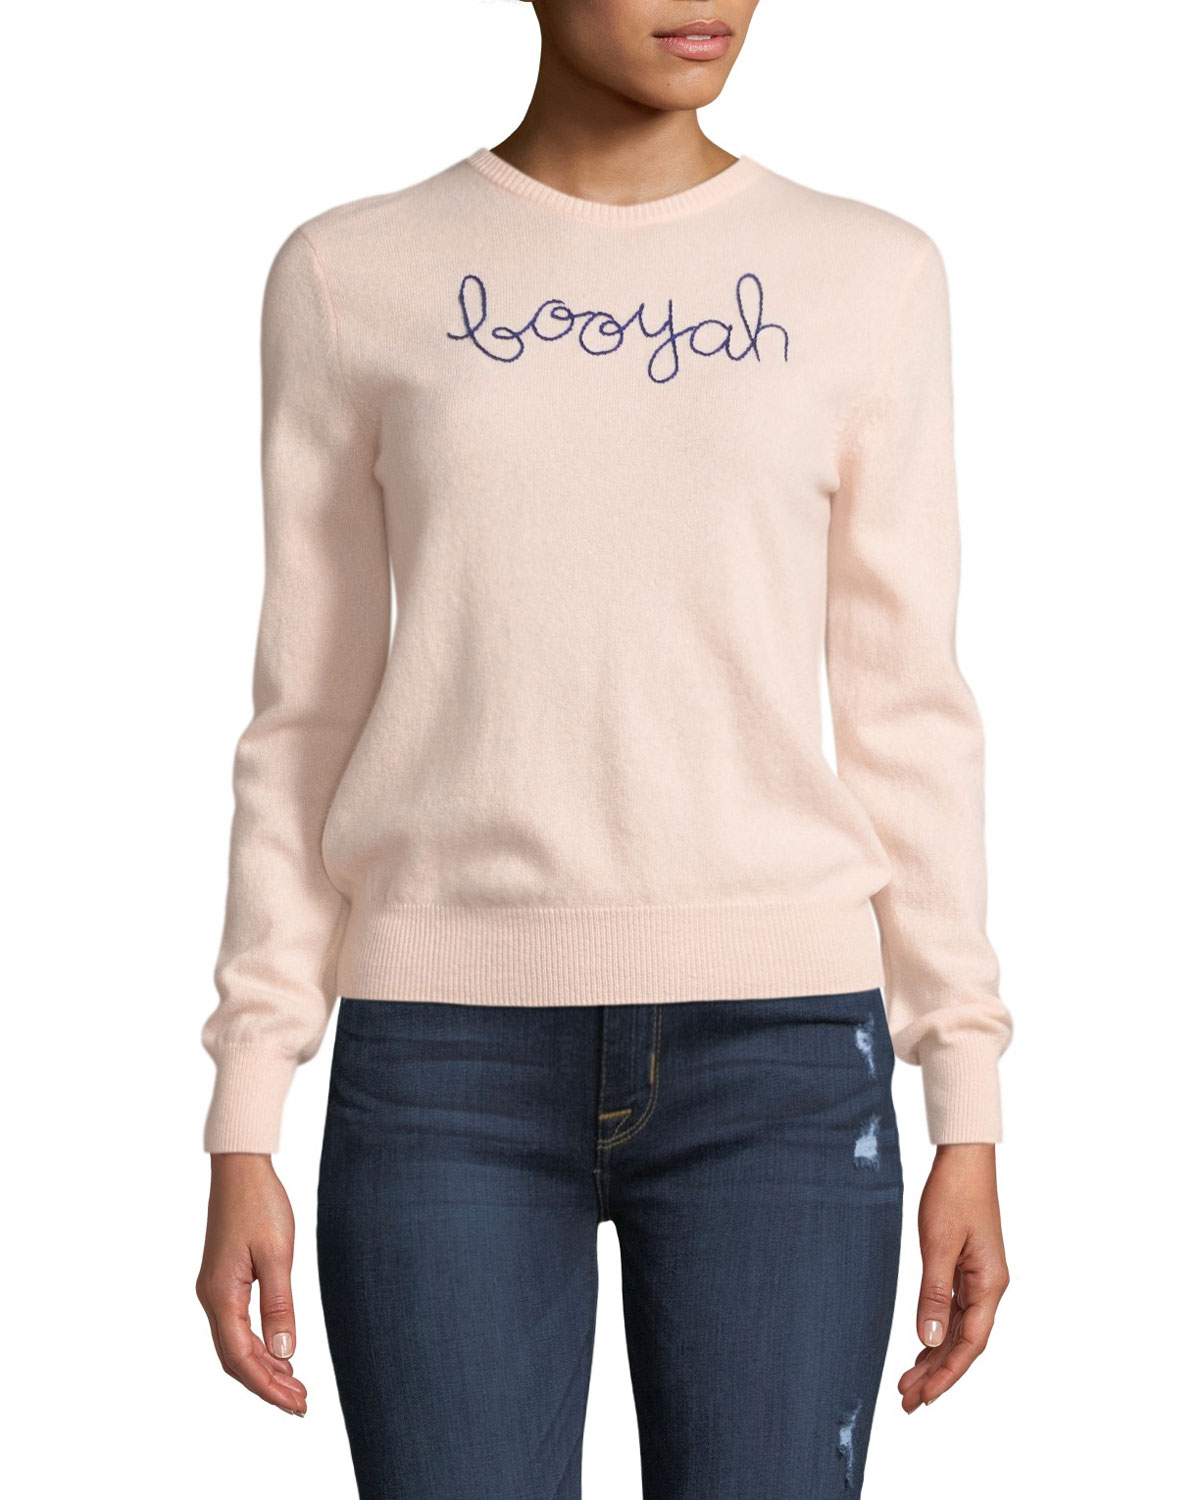 Lingua Franca Booyah Embroidered Cashmere Sweater